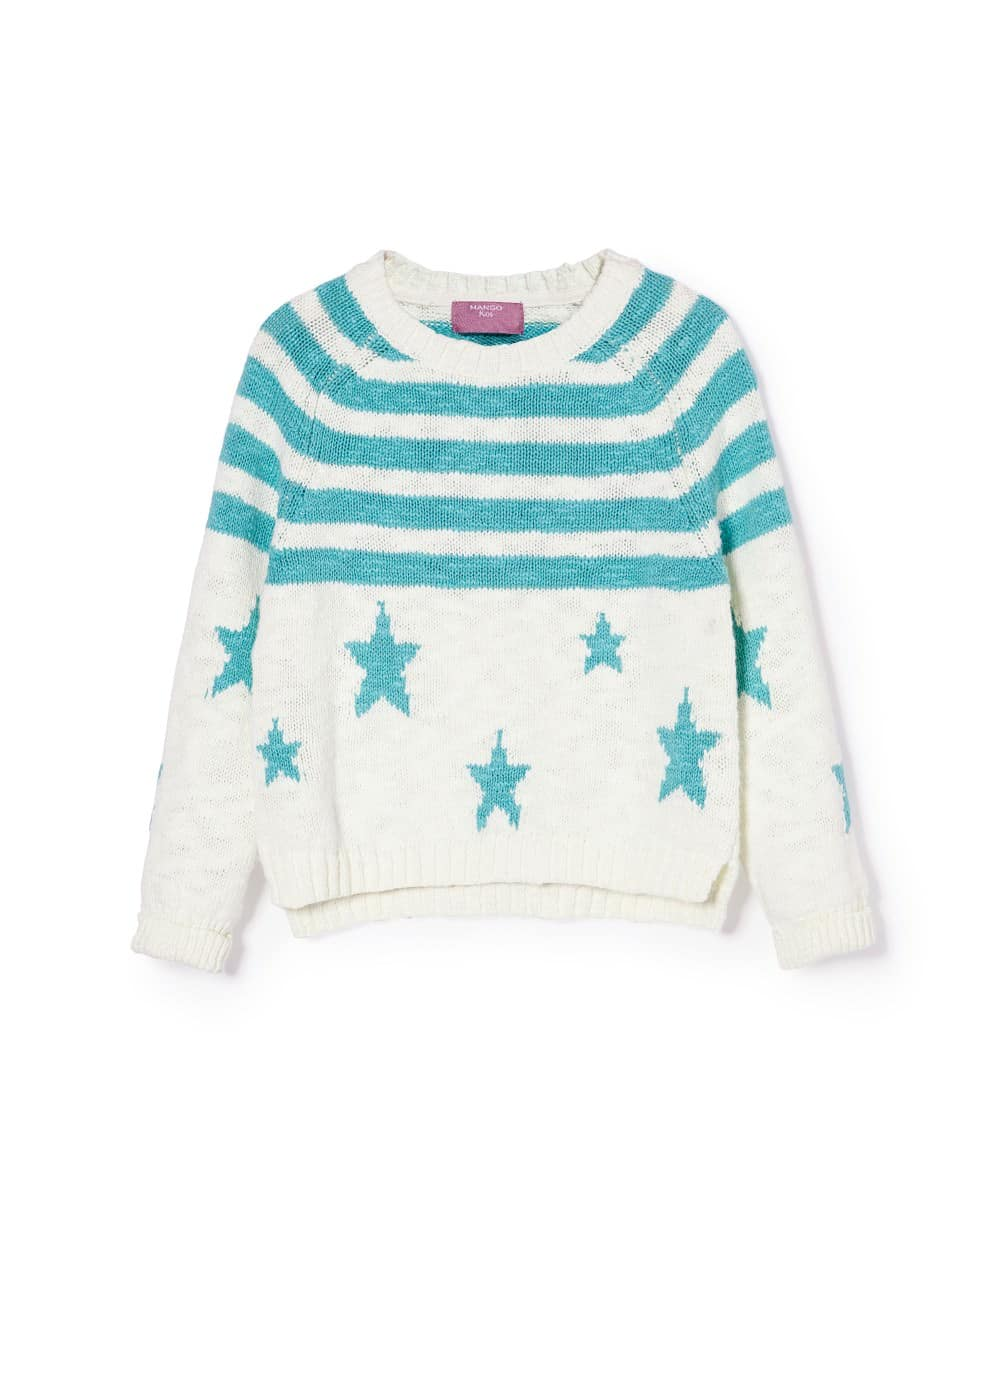 Star and stripe sweater